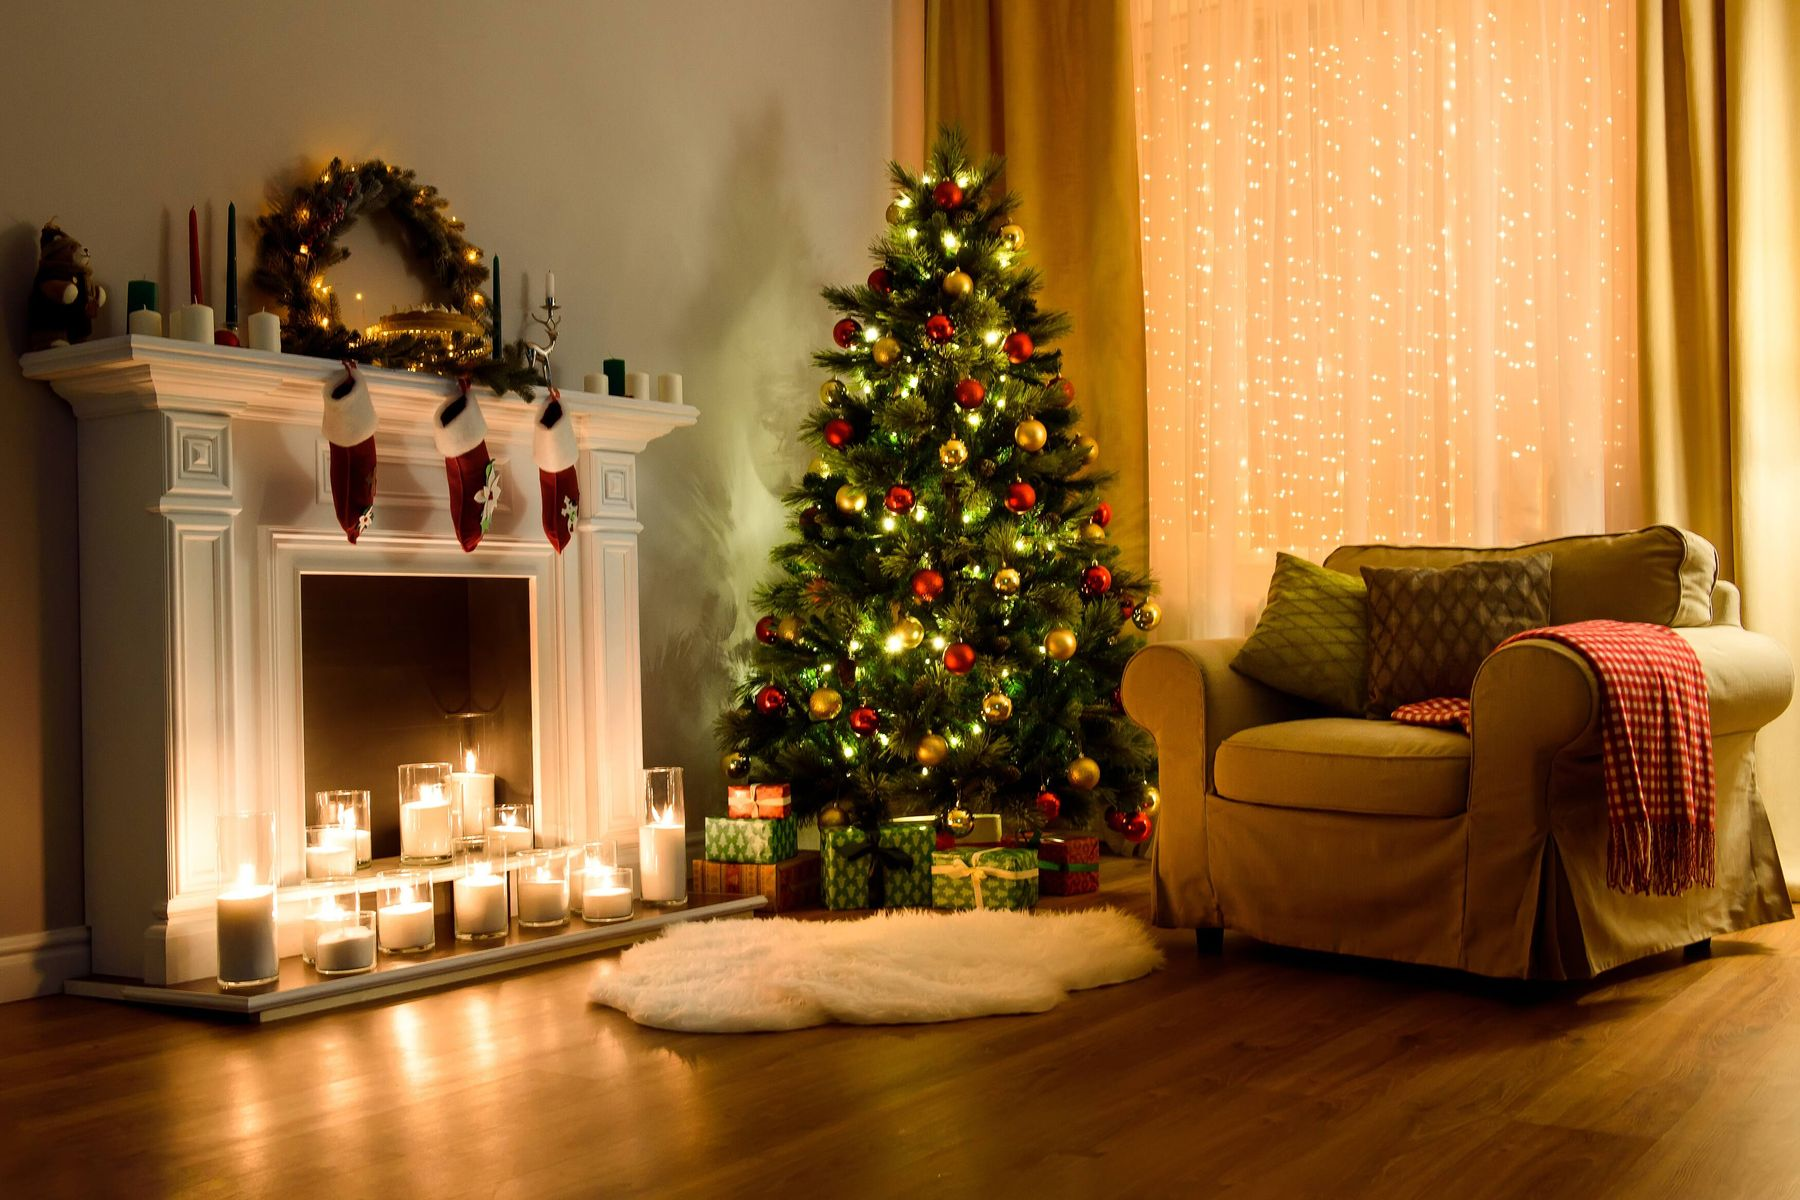 How to Have an Eco-Friendly Christmas Celebration | Cleanipedia